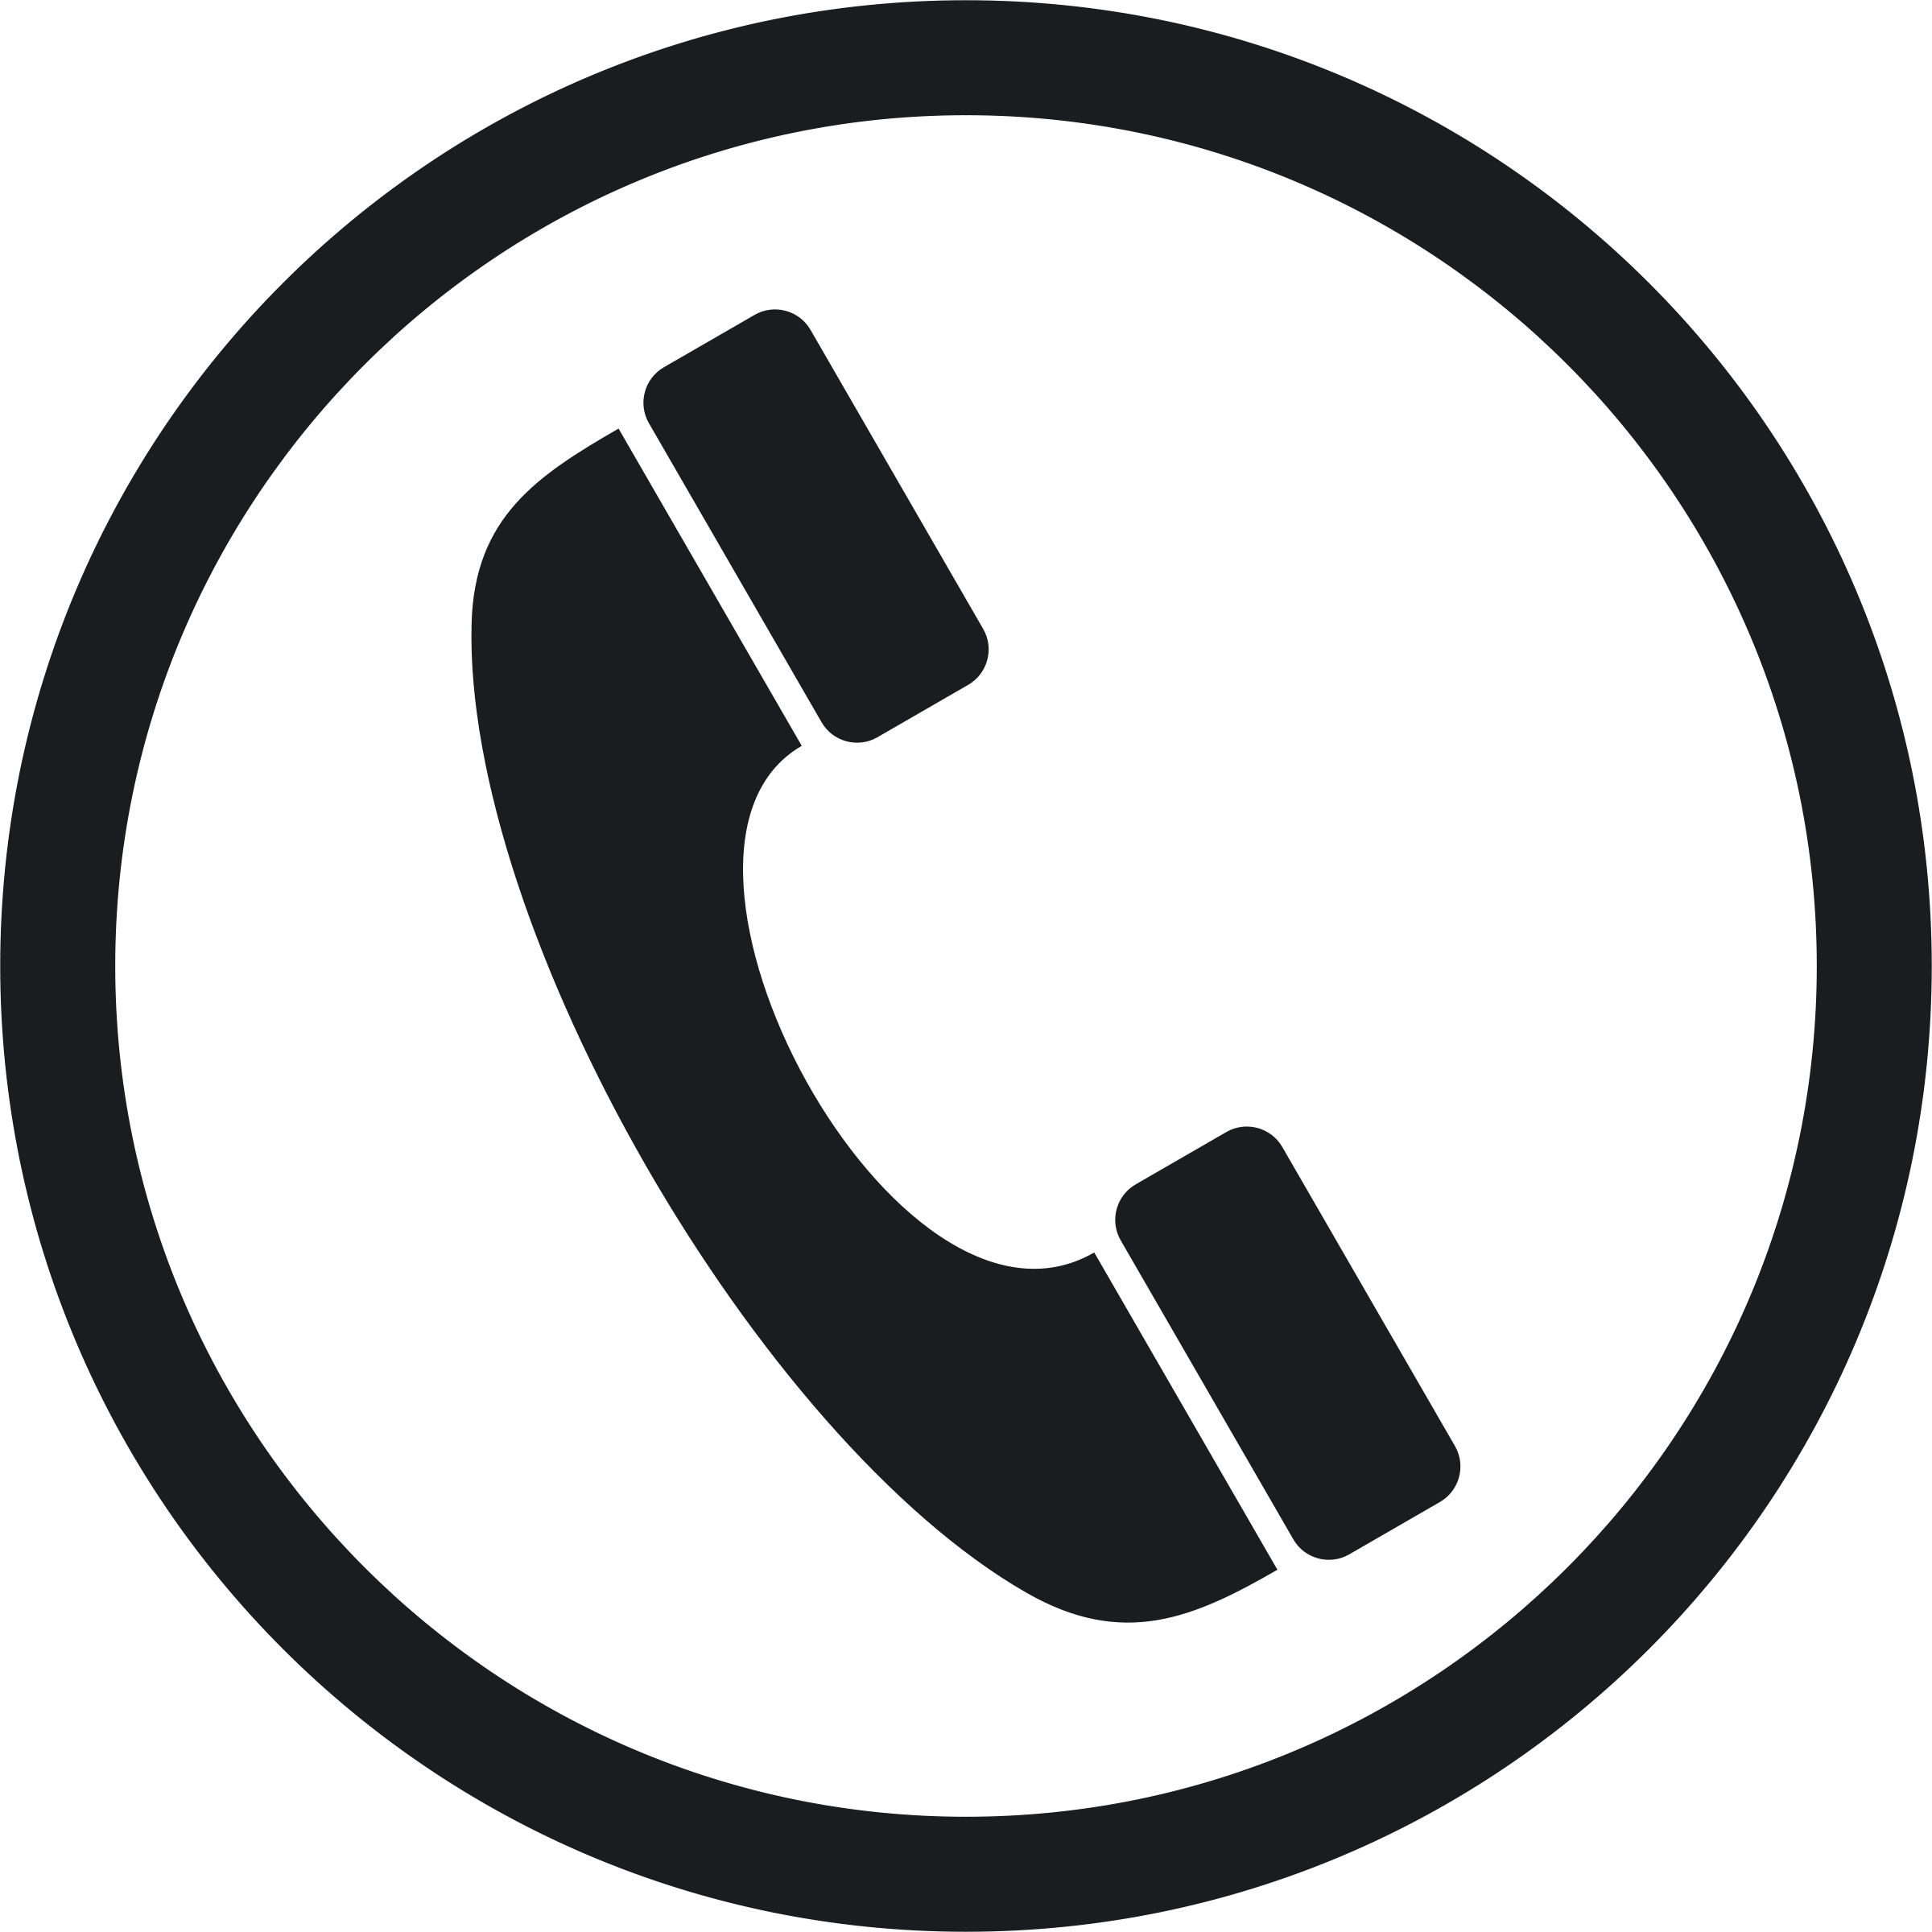 Technical graphic symbol types. Phone clipart rotary phone